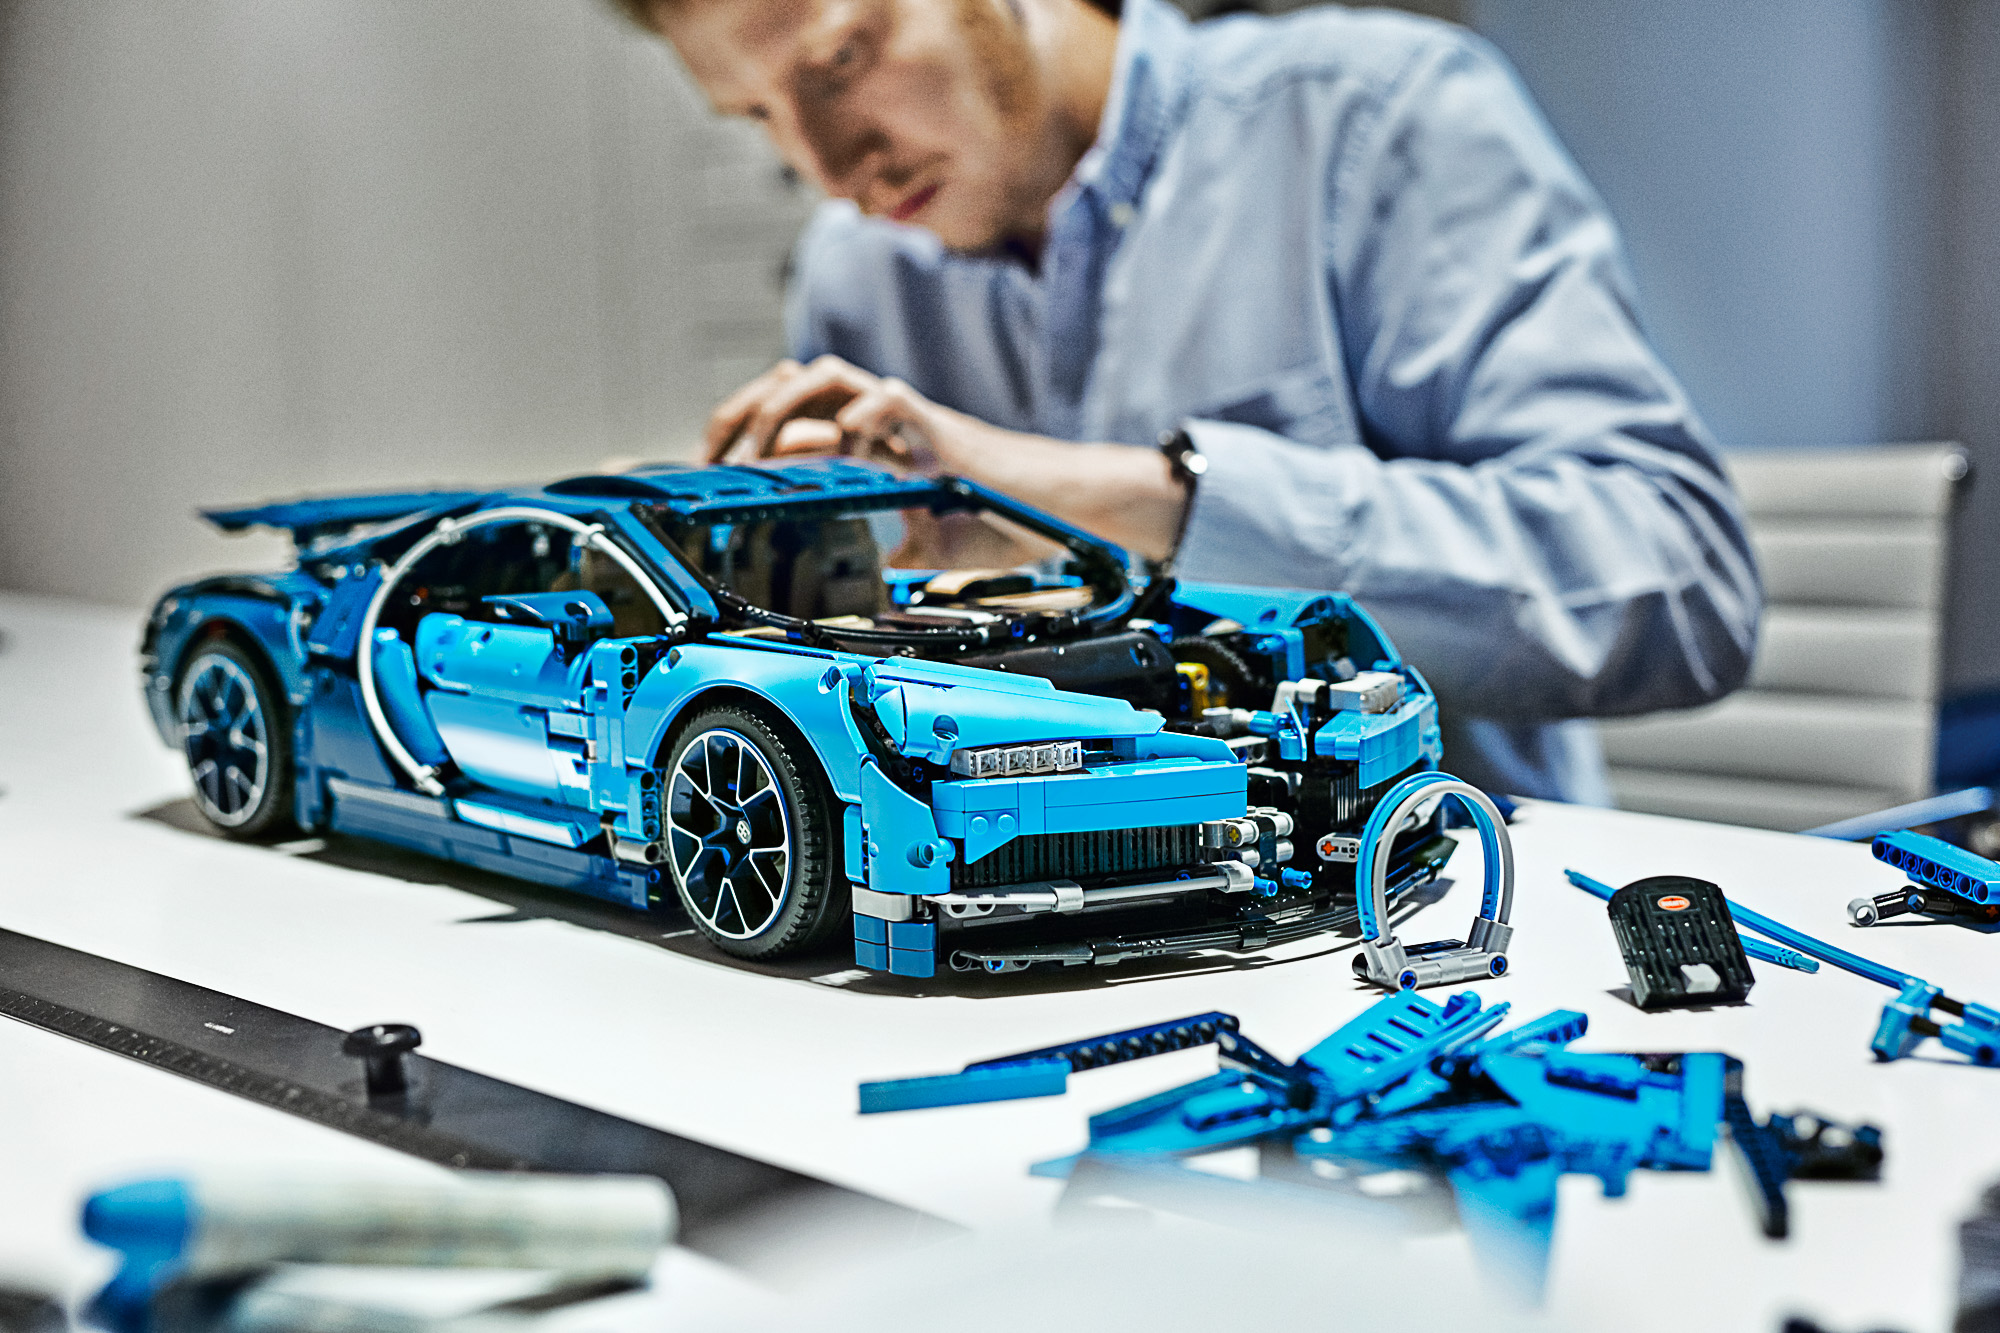 42083 lego technic bugatti chiron 16 the brothers brick the brothers brick. Black Bedroom Furniture Sets. Home Design Ideas